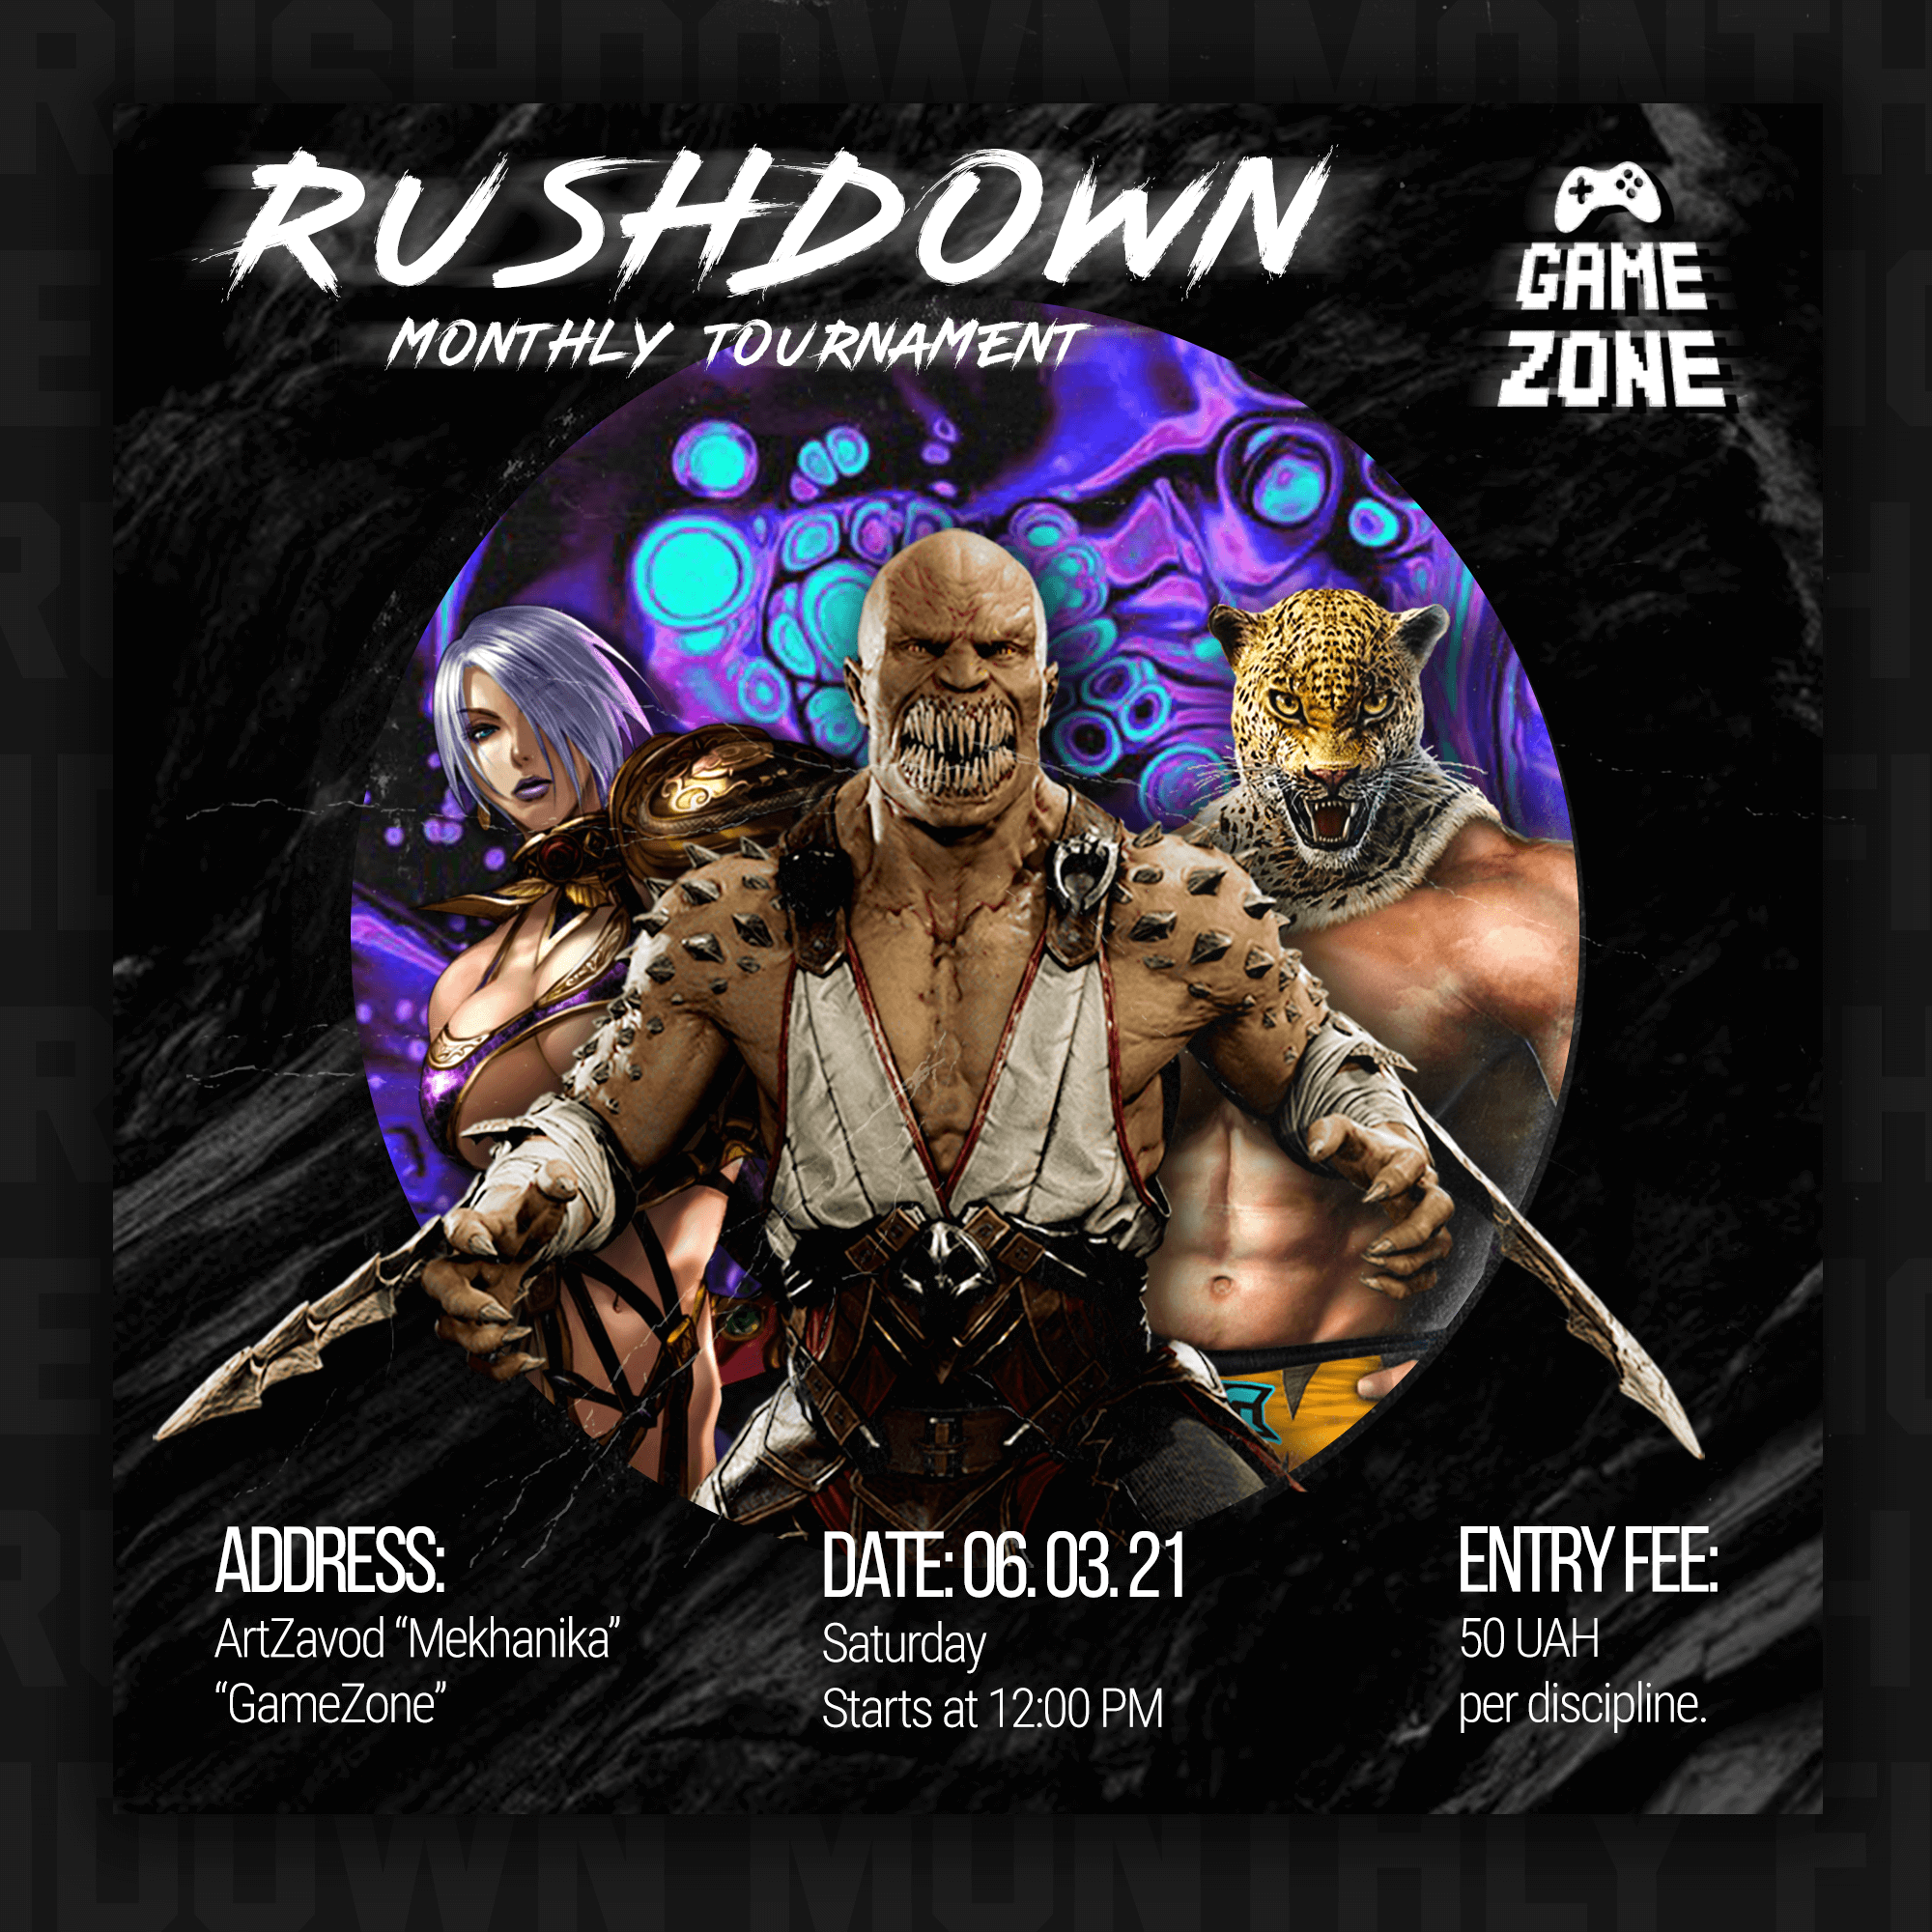 Rushdown Monthly Tournament announce